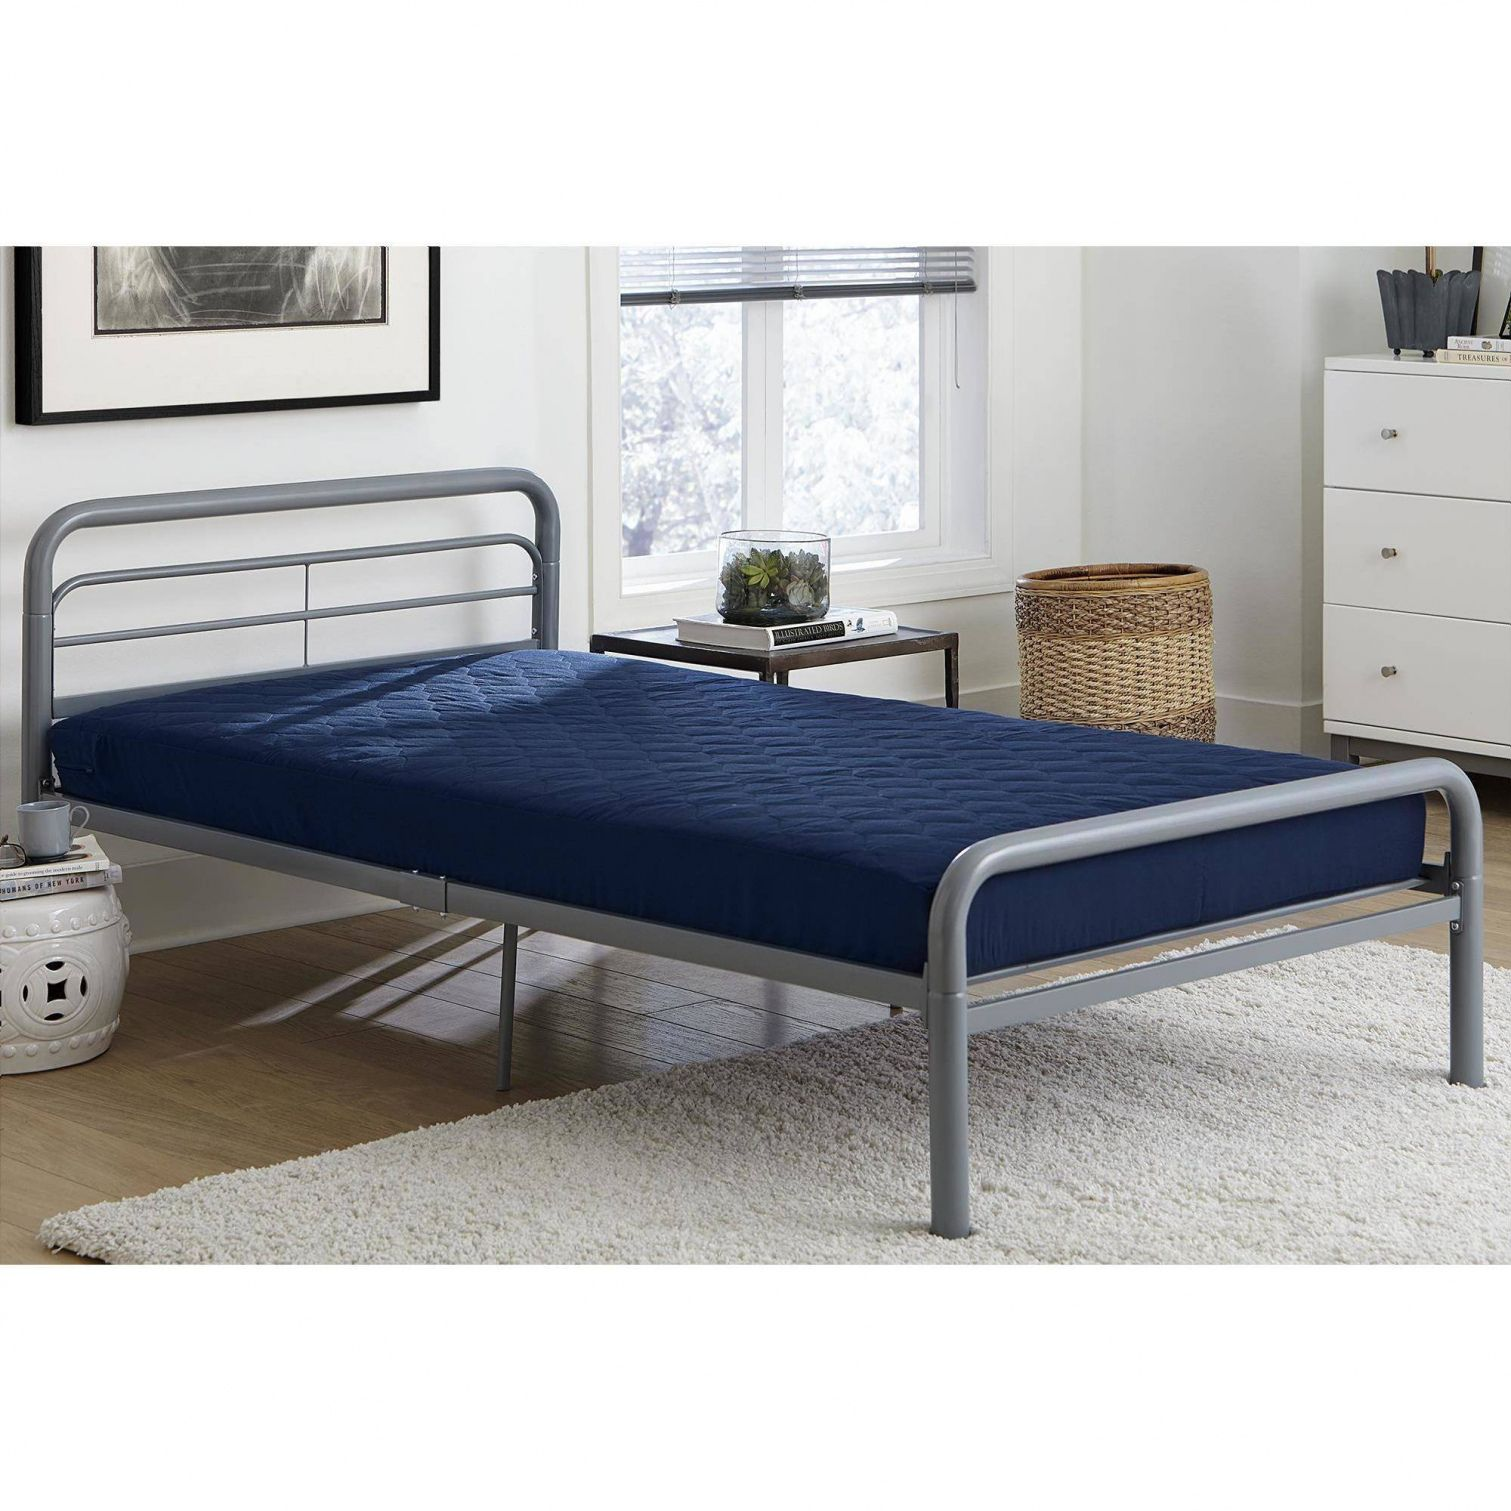 twin bunk bed mattress interior house paint ideas check more at